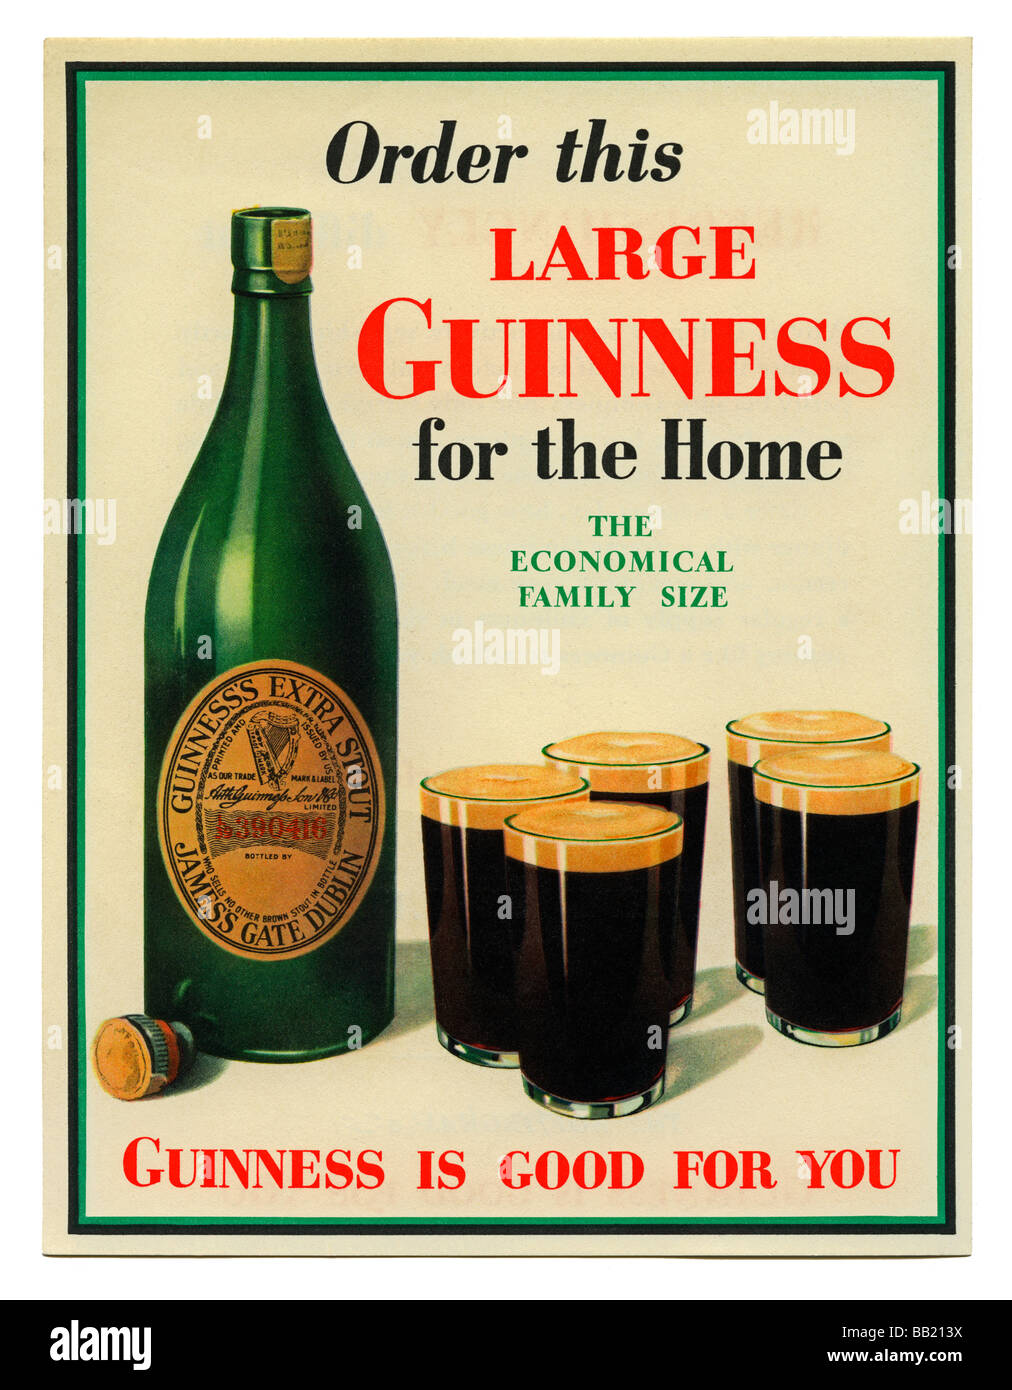 An old small poster advertising a large bottle of Guinness Extra Stout to drink at home, c. 1950 - Stock Image